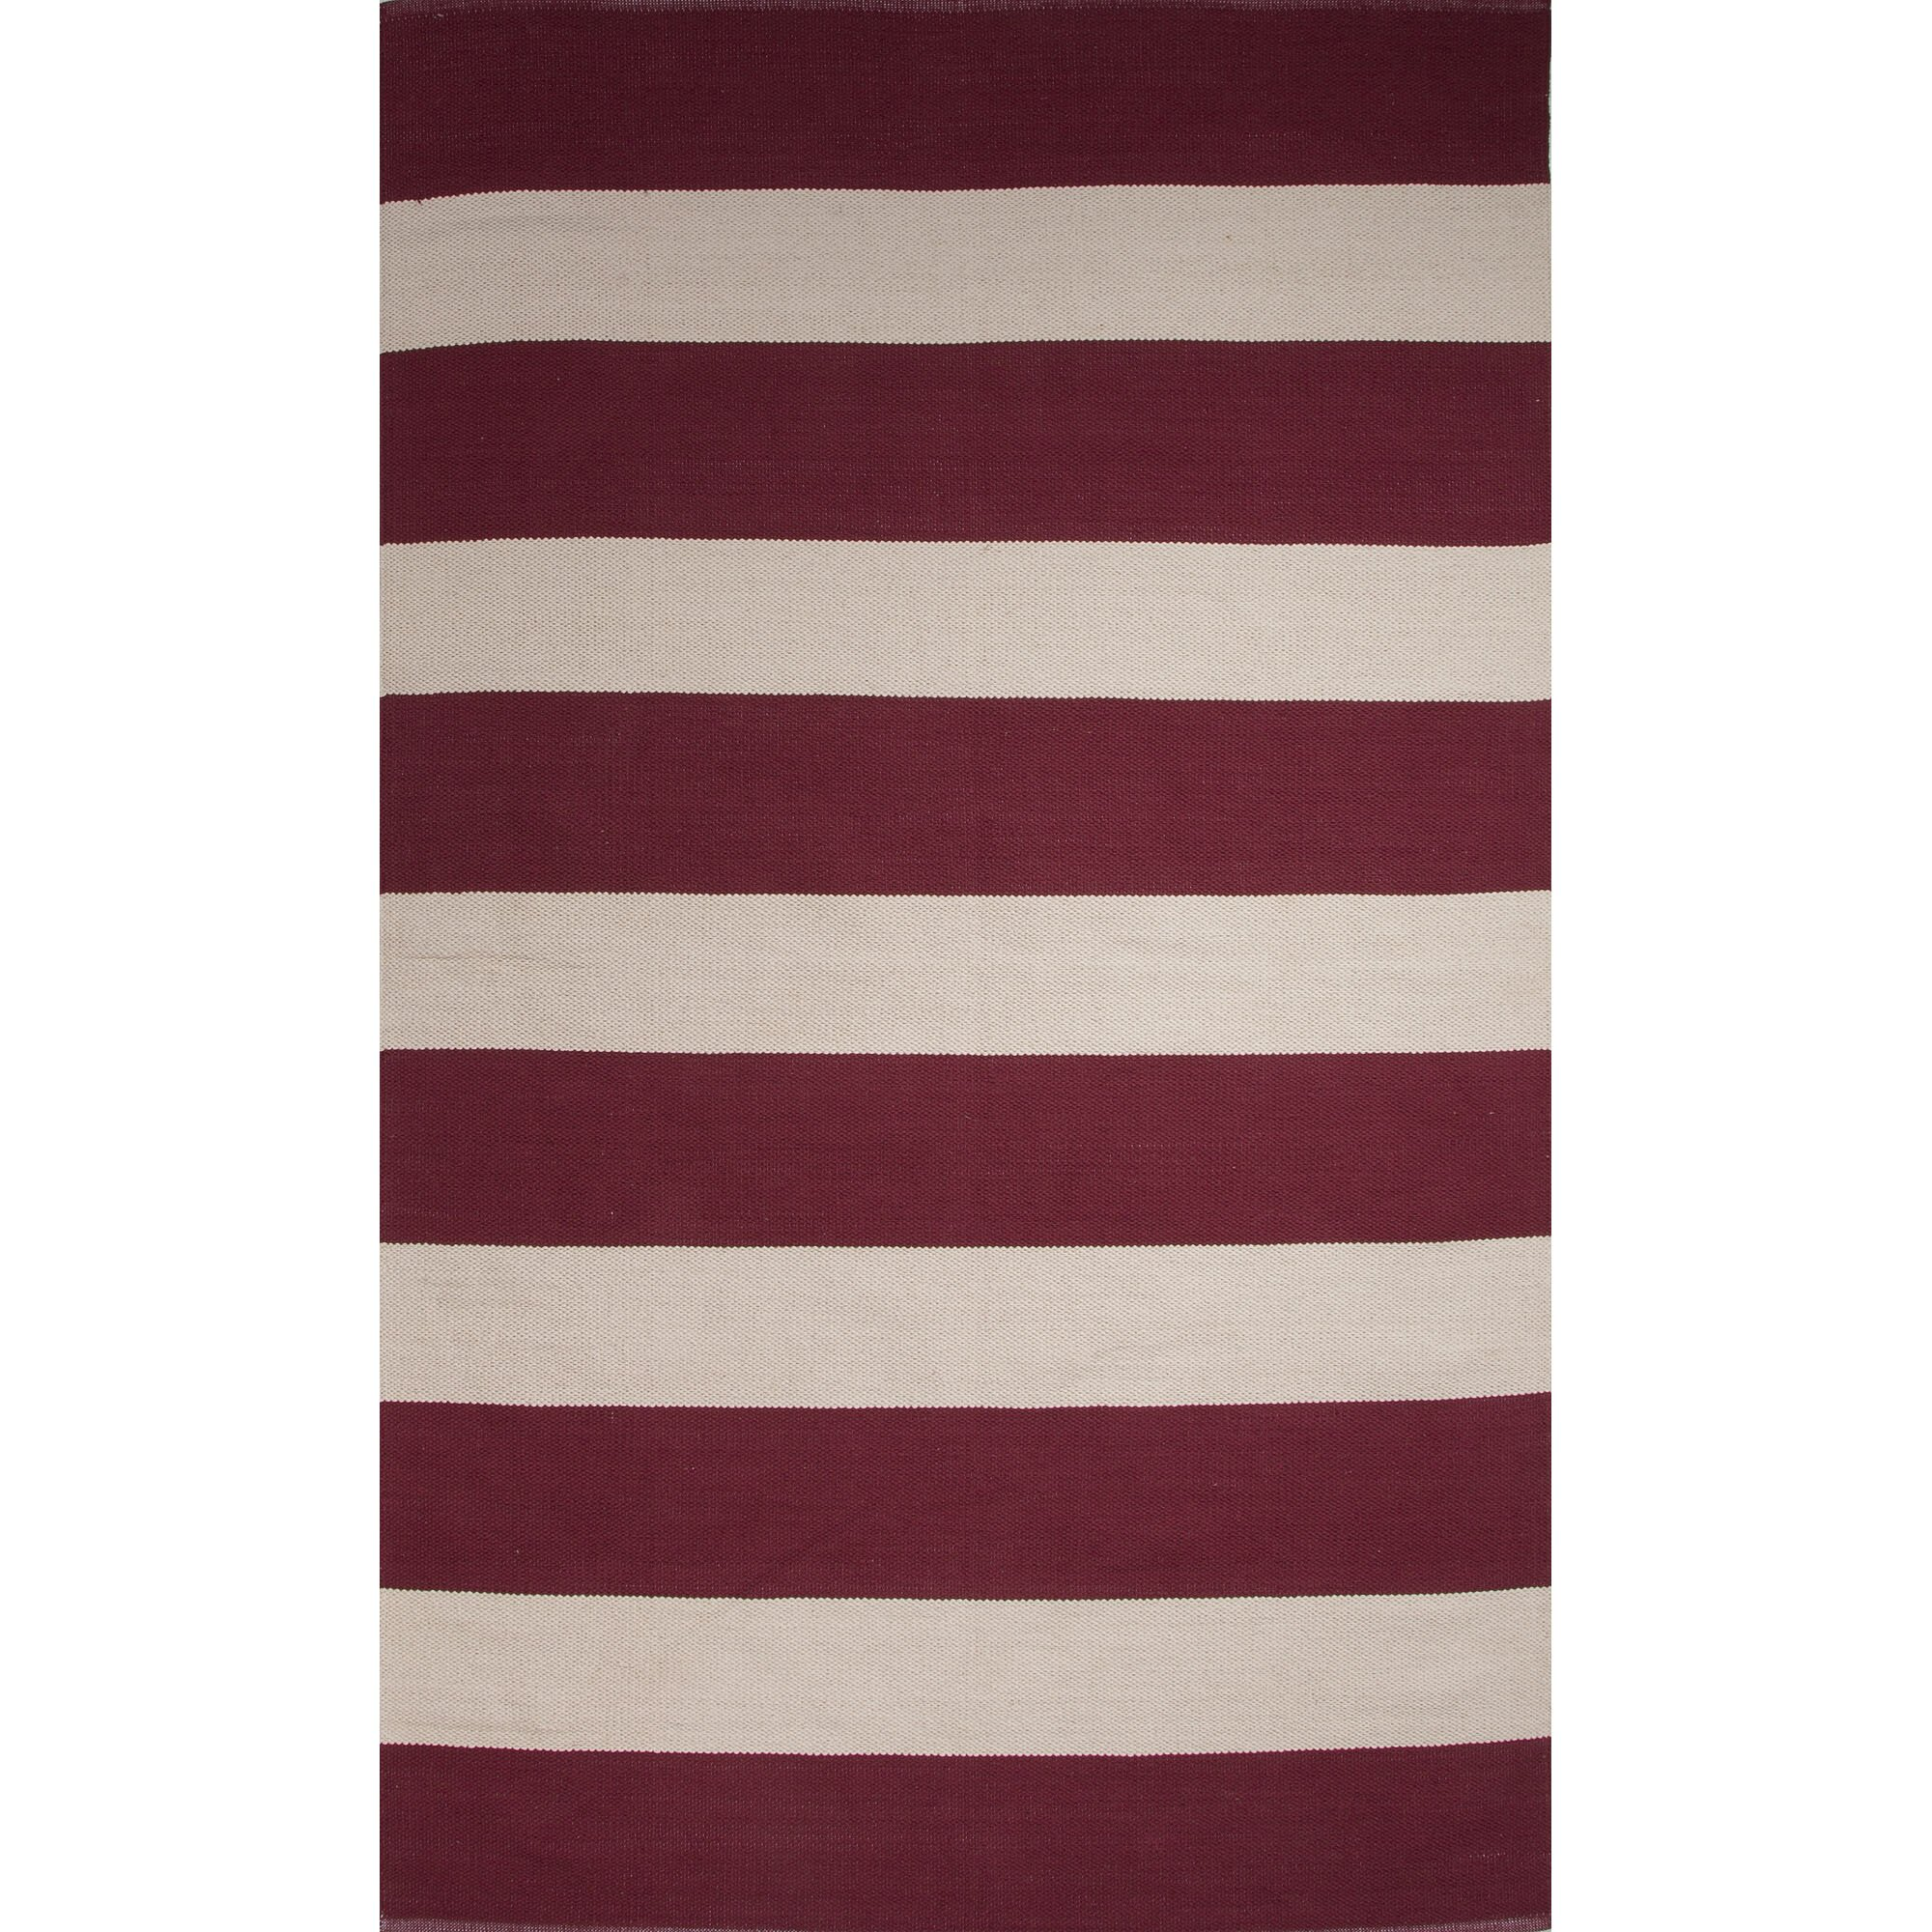 Jaipurliving Sonoma Cotton Flat Weave Red White Area Rug